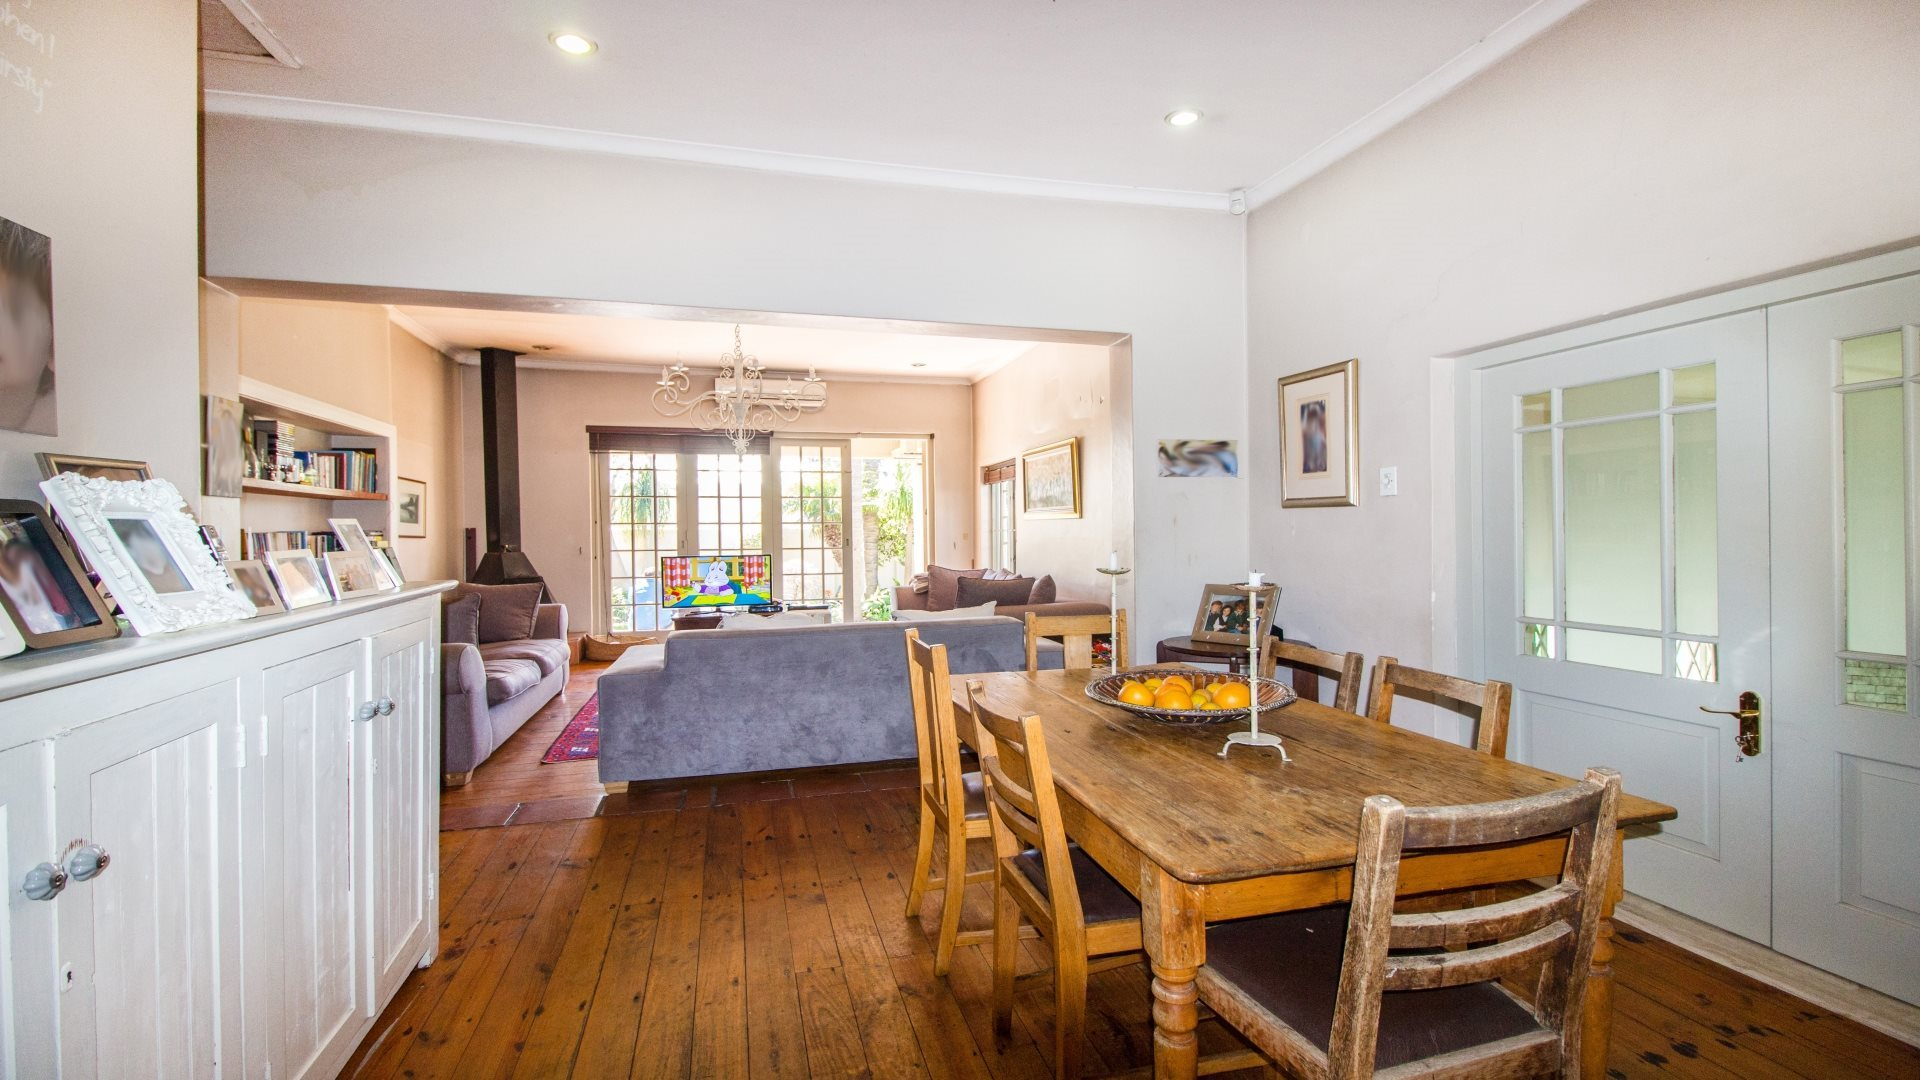 paarl home with wooden floors